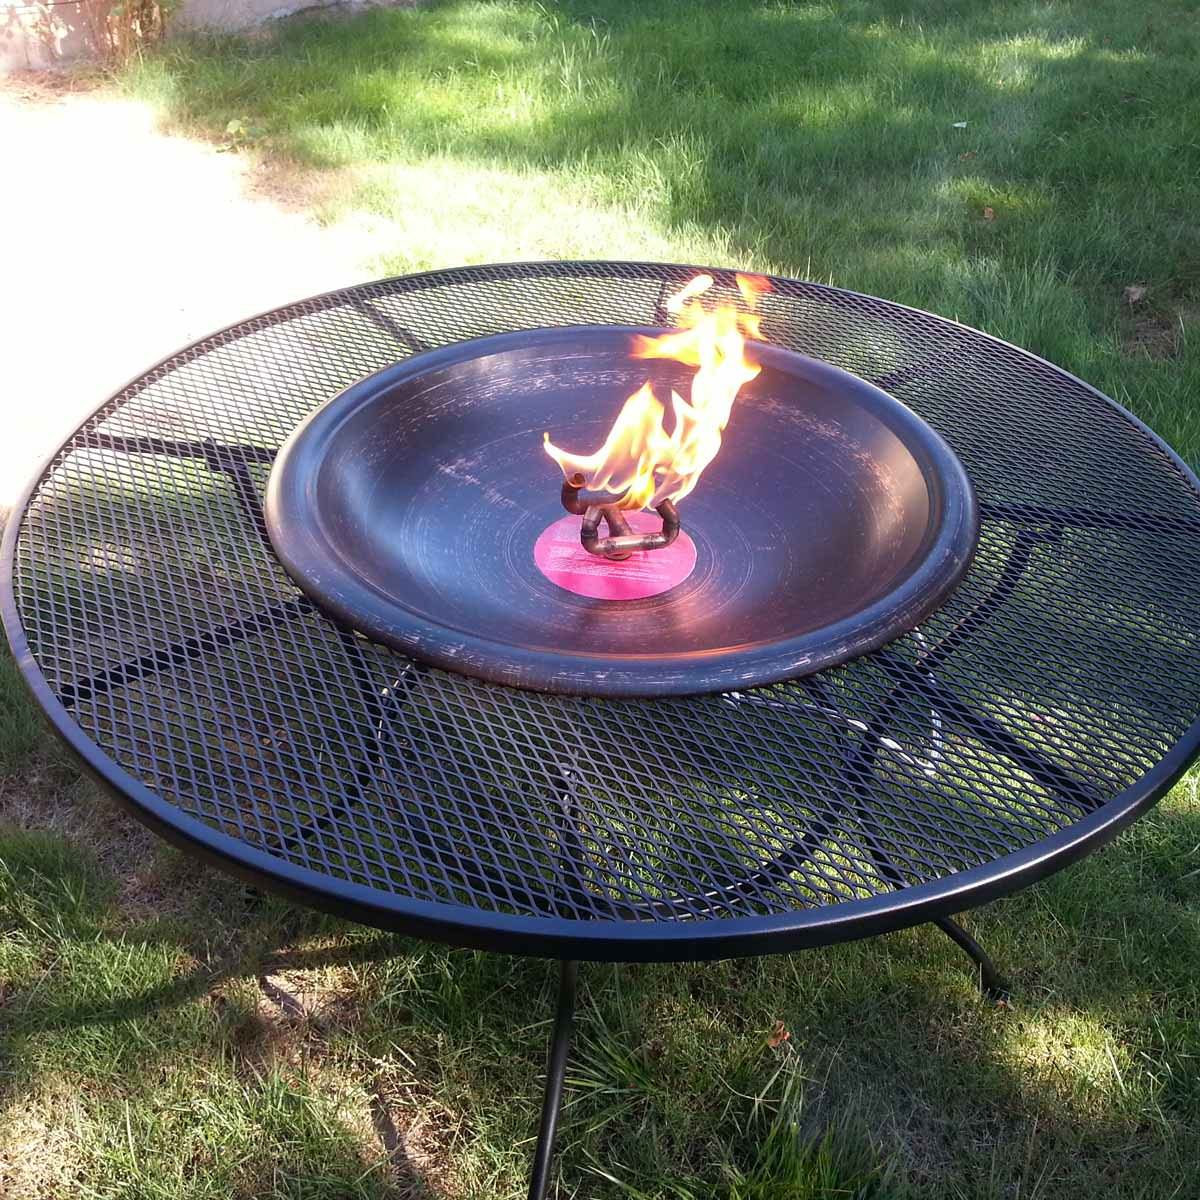 12 great backyard fire pit ideas page 11 of 16 family